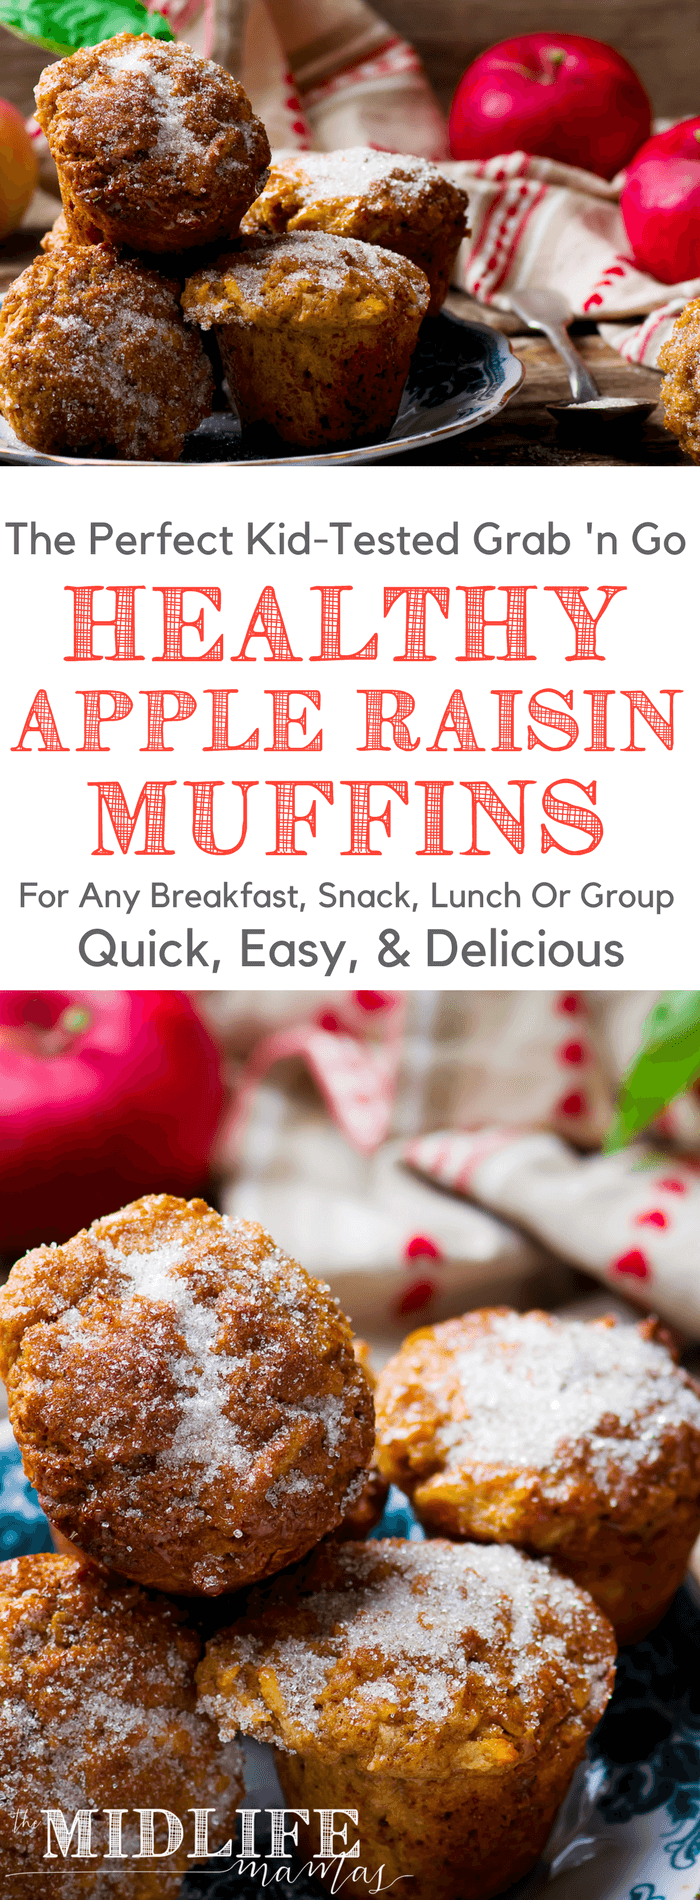 I love this clean eating recipe for healthy apple muffins. I am not a good baker - but these are easy! The kids love them for breakfast or snacks. It's delicious (see what happened there?) that they are flavored with cinnamon and maple syrup; they are gluten free and don't have any oil, eggs, or butter. What they do have is fiber, protein, and healthy fats from oatmeal, flax and chia seeds! #healthyapplemuffins #healthymuffins #applemuffins #cleaneatingmuffins www.themidlifemamas.com